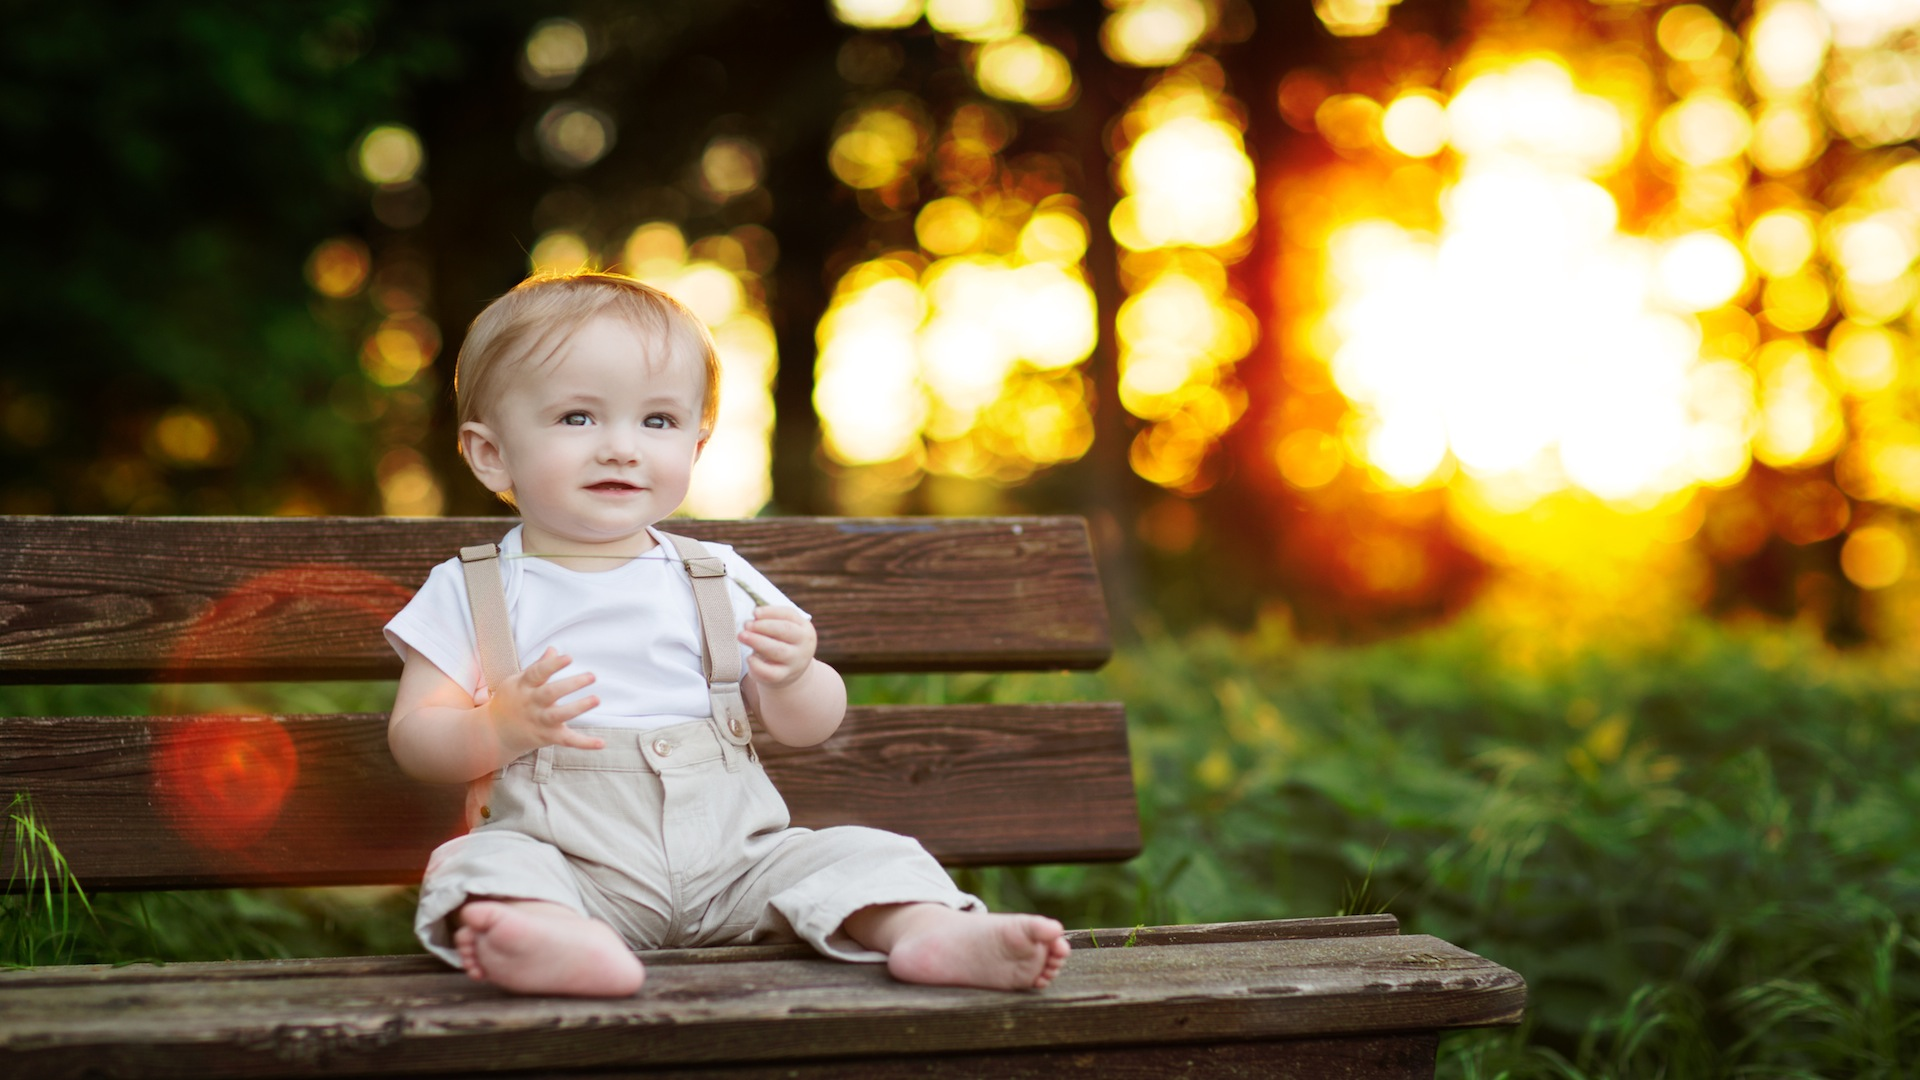 Small Cute Baby Wallpaper Download 45 Small And Cute Baby Wallpaper Download For Free